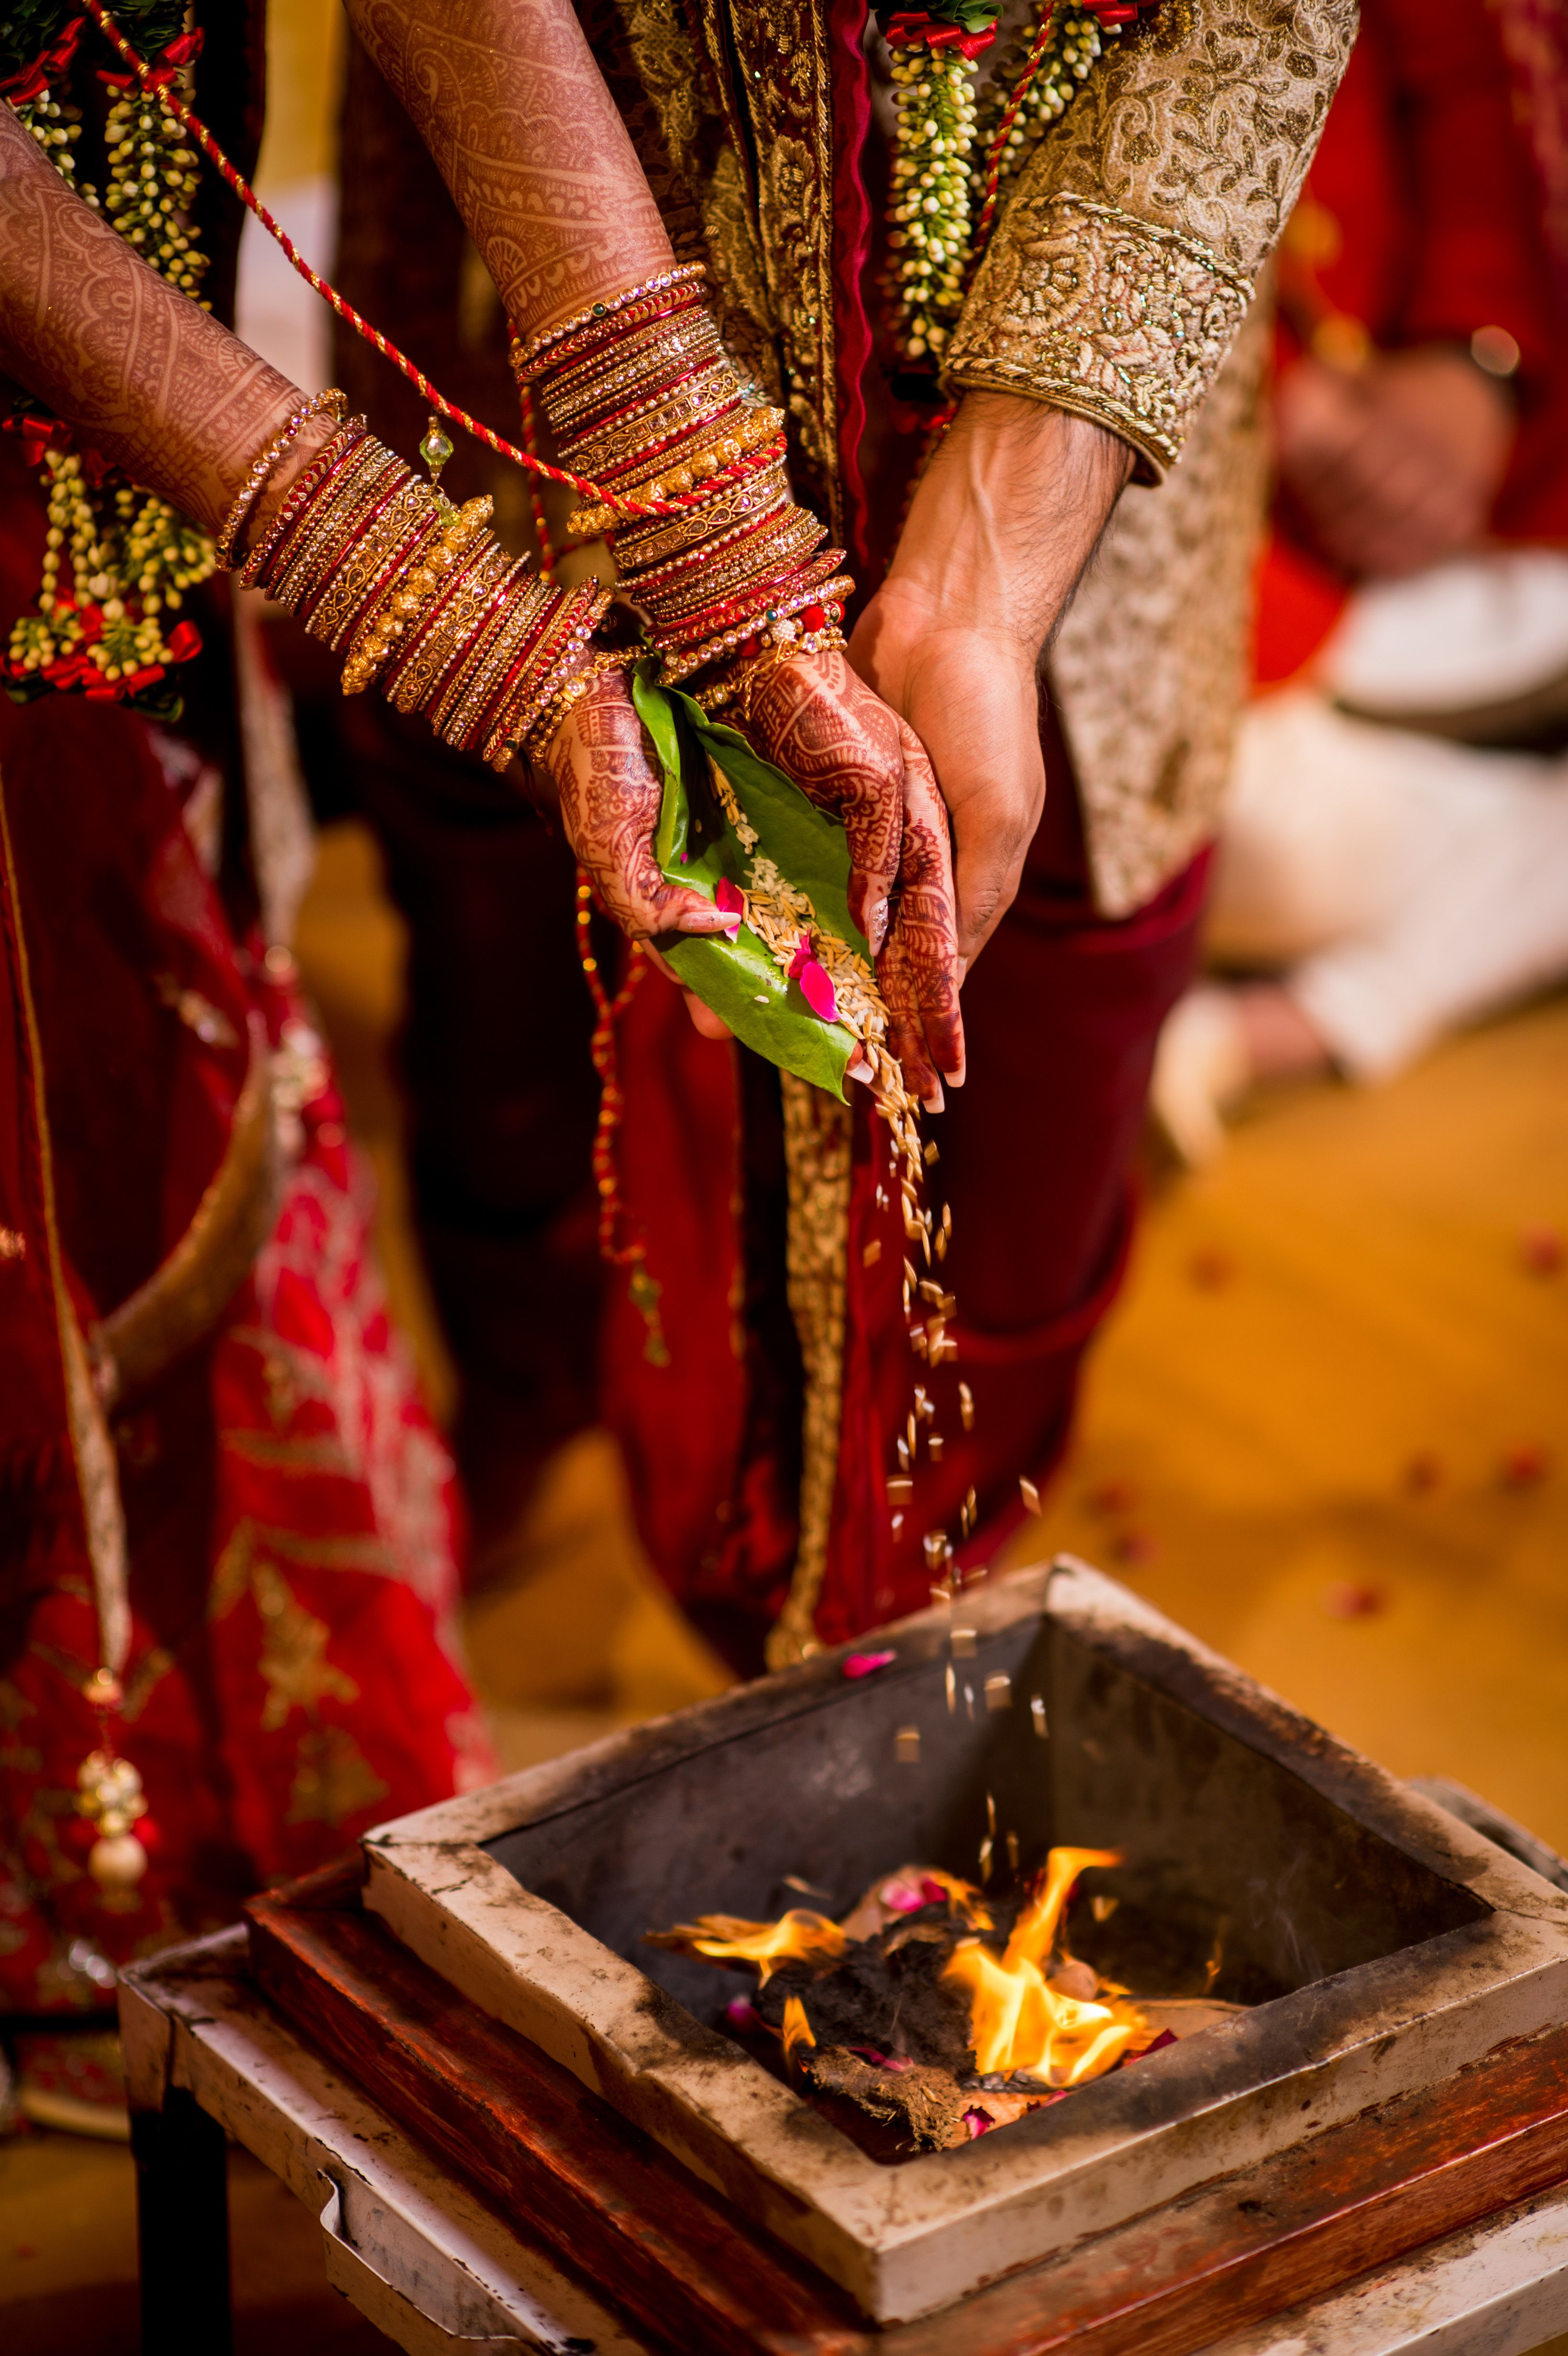 An Indian Wedding Spanning 5 Days! in 2020 Indian